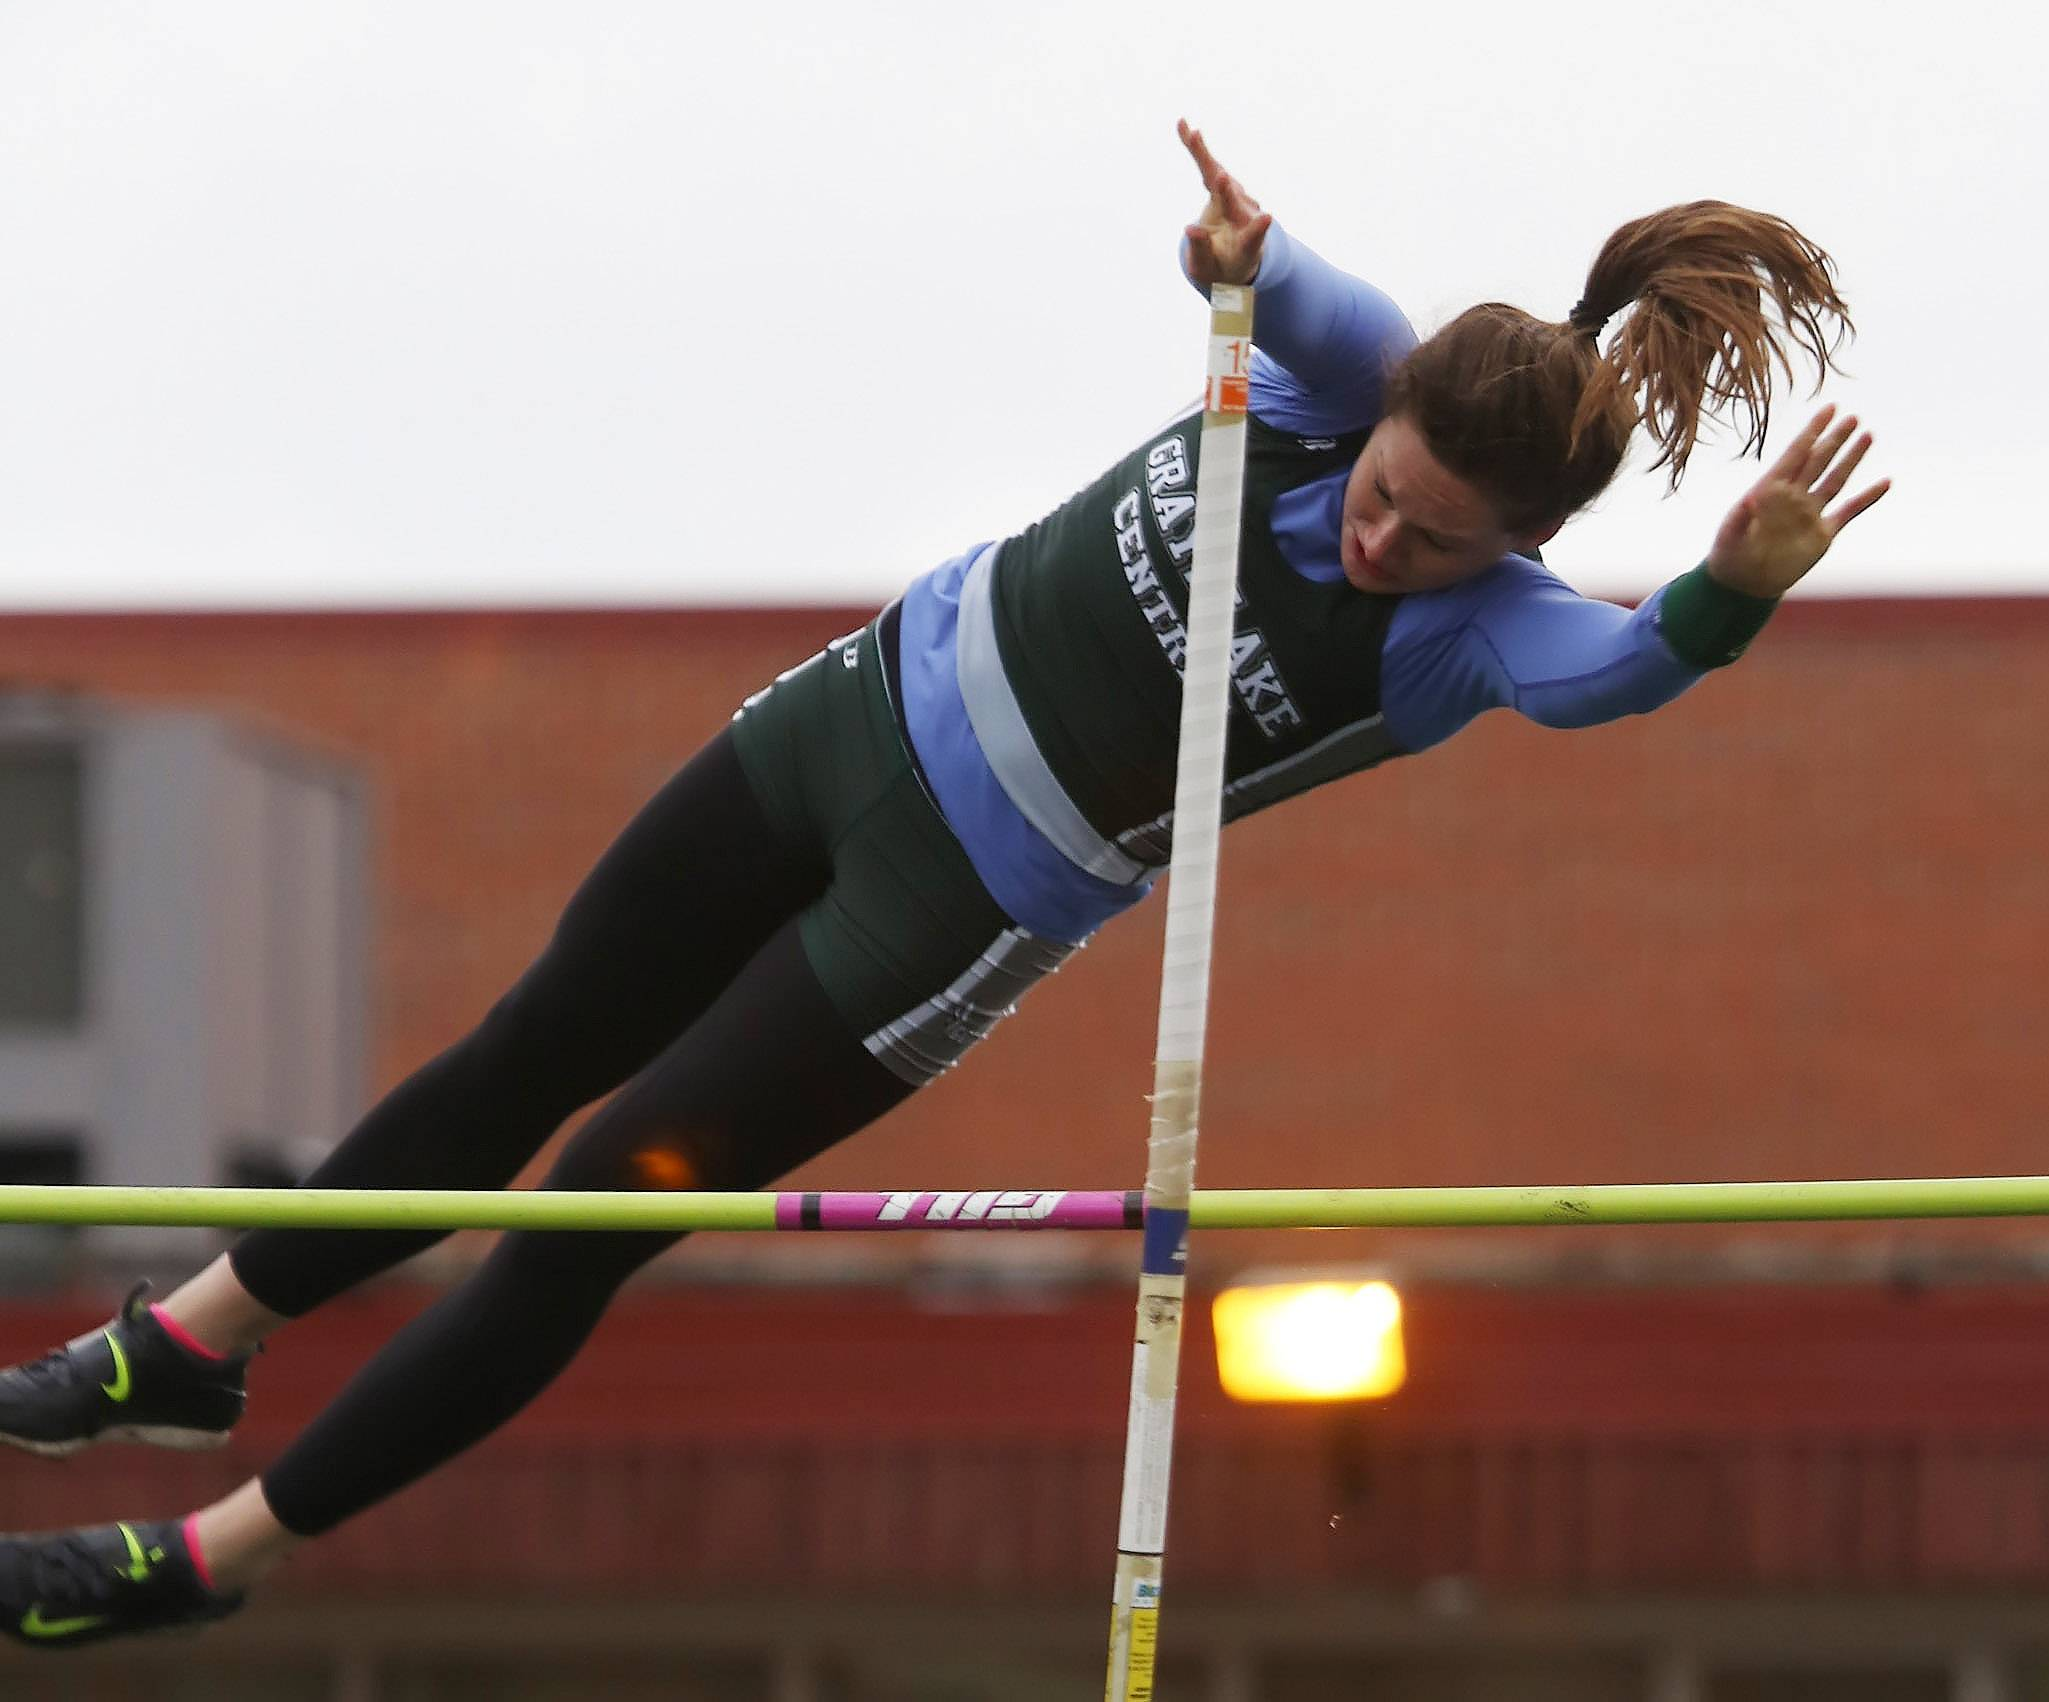 Grayslake Central's Katie Schroeder clears the height in pole vault during the Lake County Invite on Thursday at Grayslake Central.